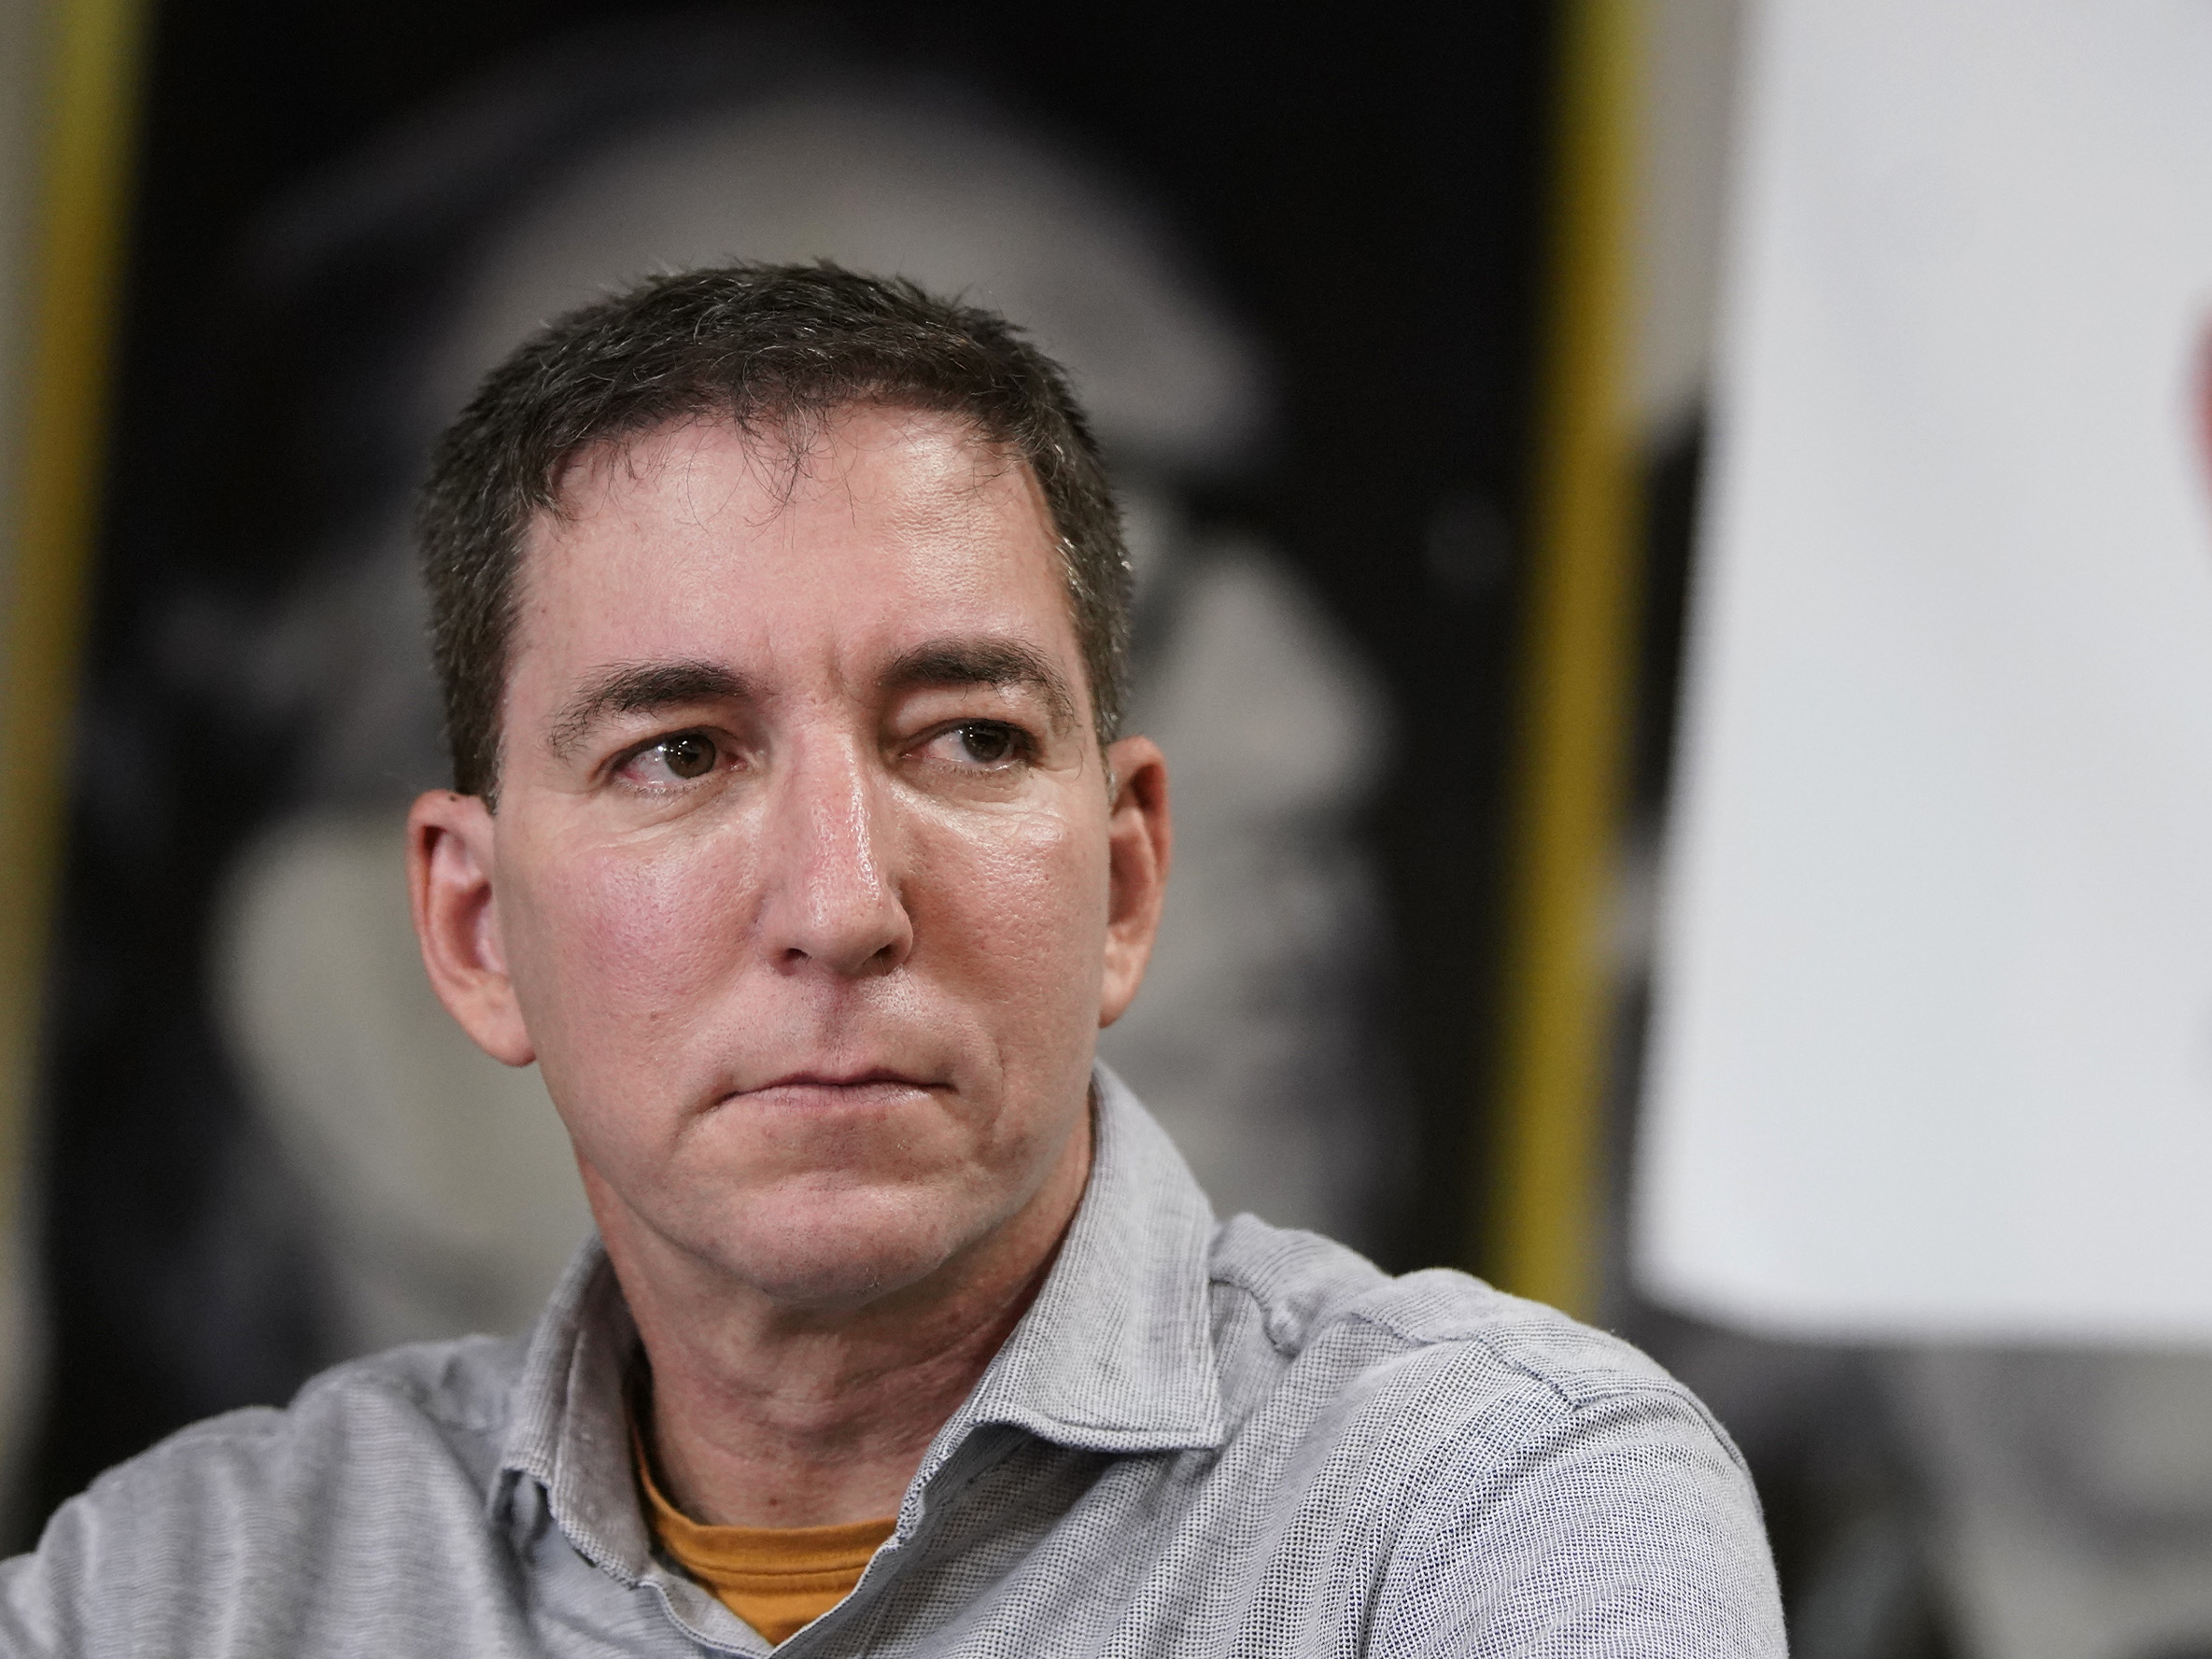 Glenn Greenwald Accused By Brazilian Prosecutors In Hacking Probe